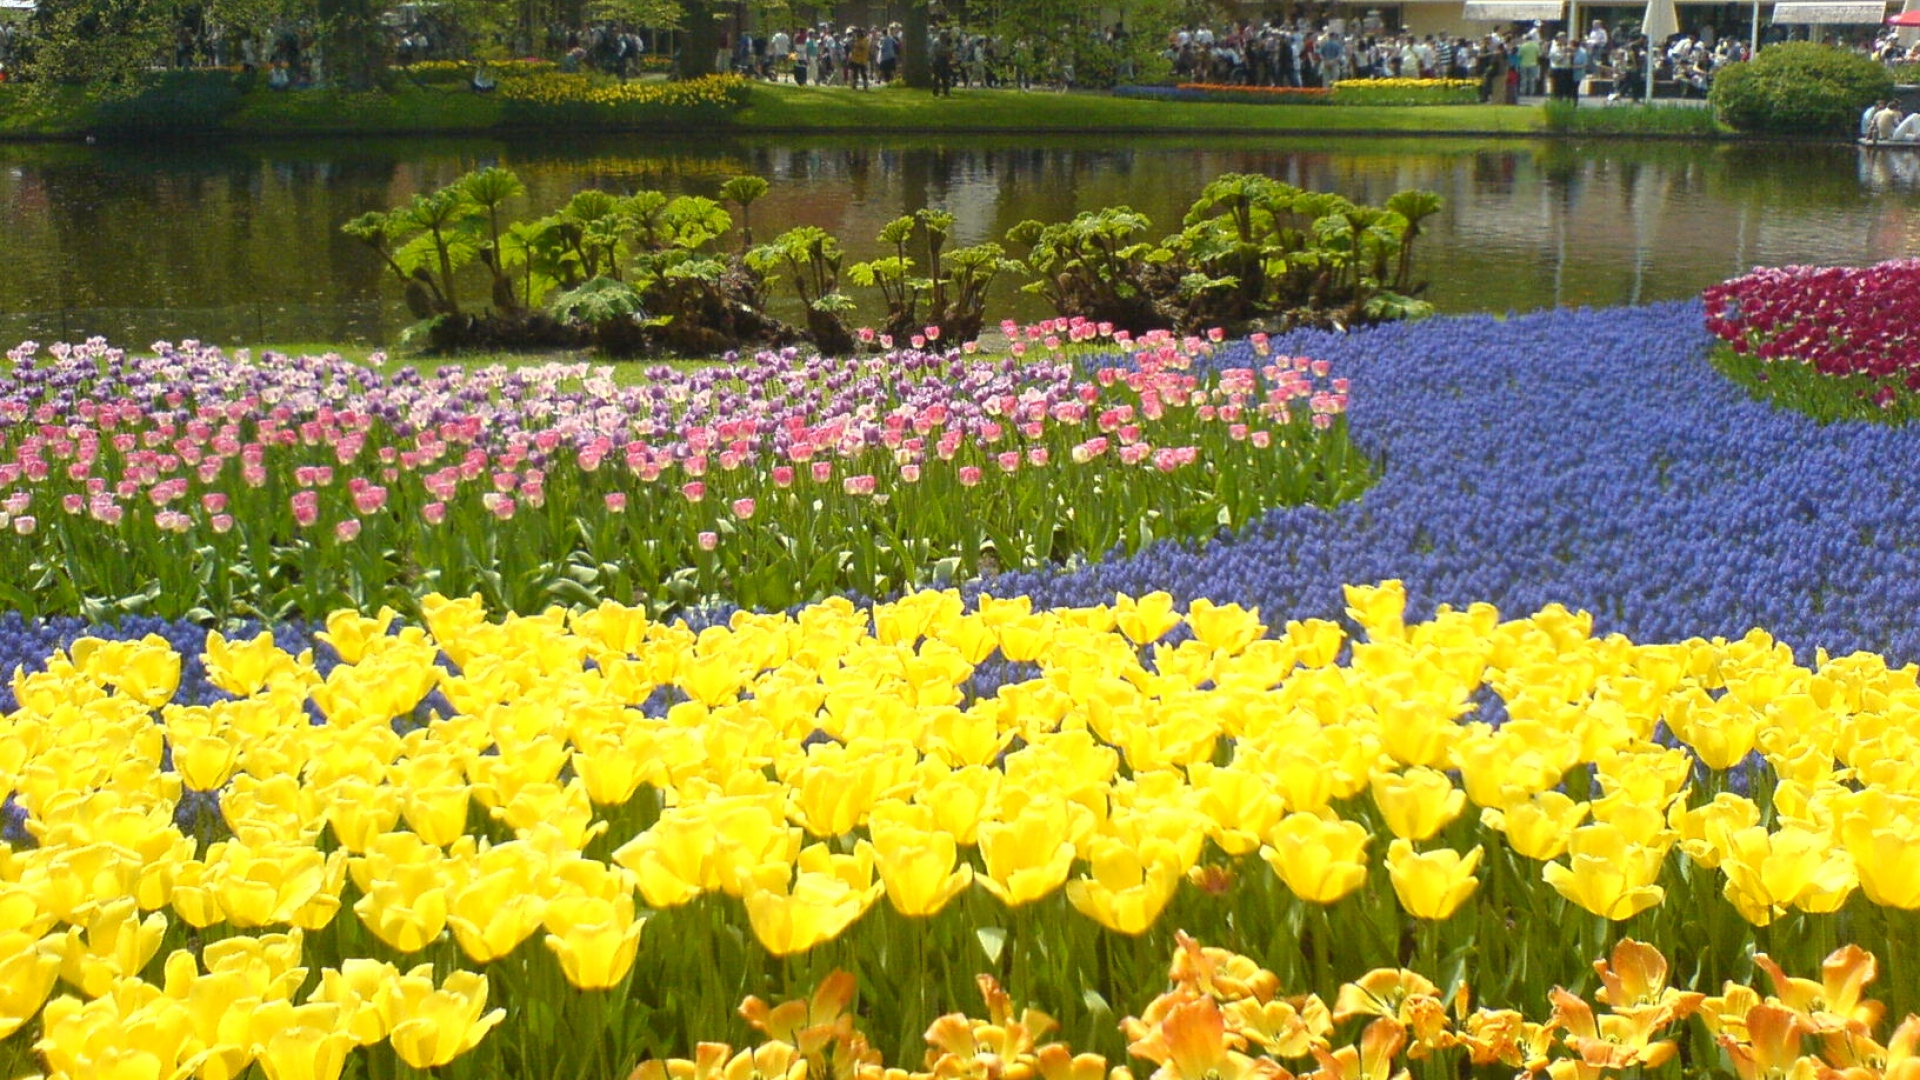 Download Wallpaper X Tulips Flowers Pond Trees